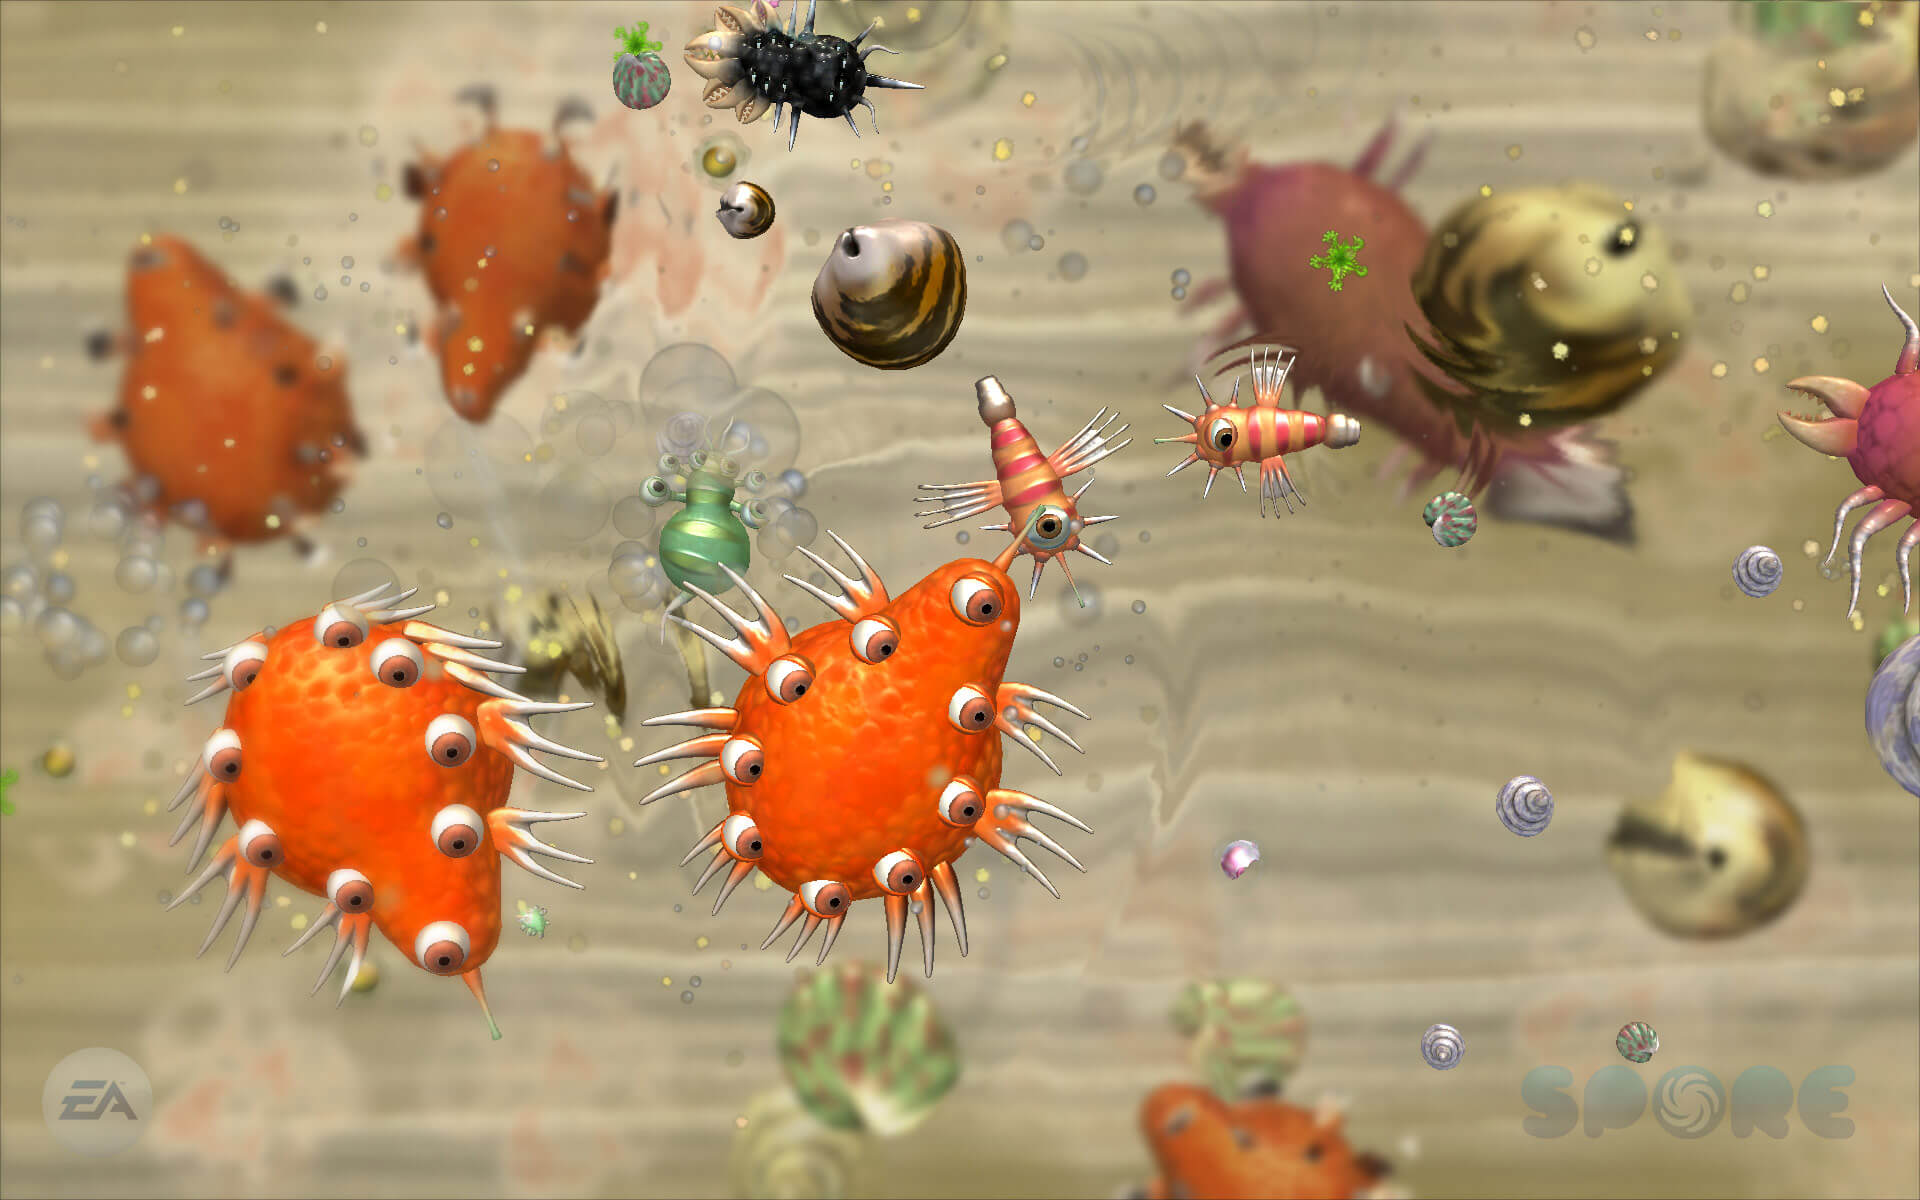 Spore Cell Stage Oyun inceleme